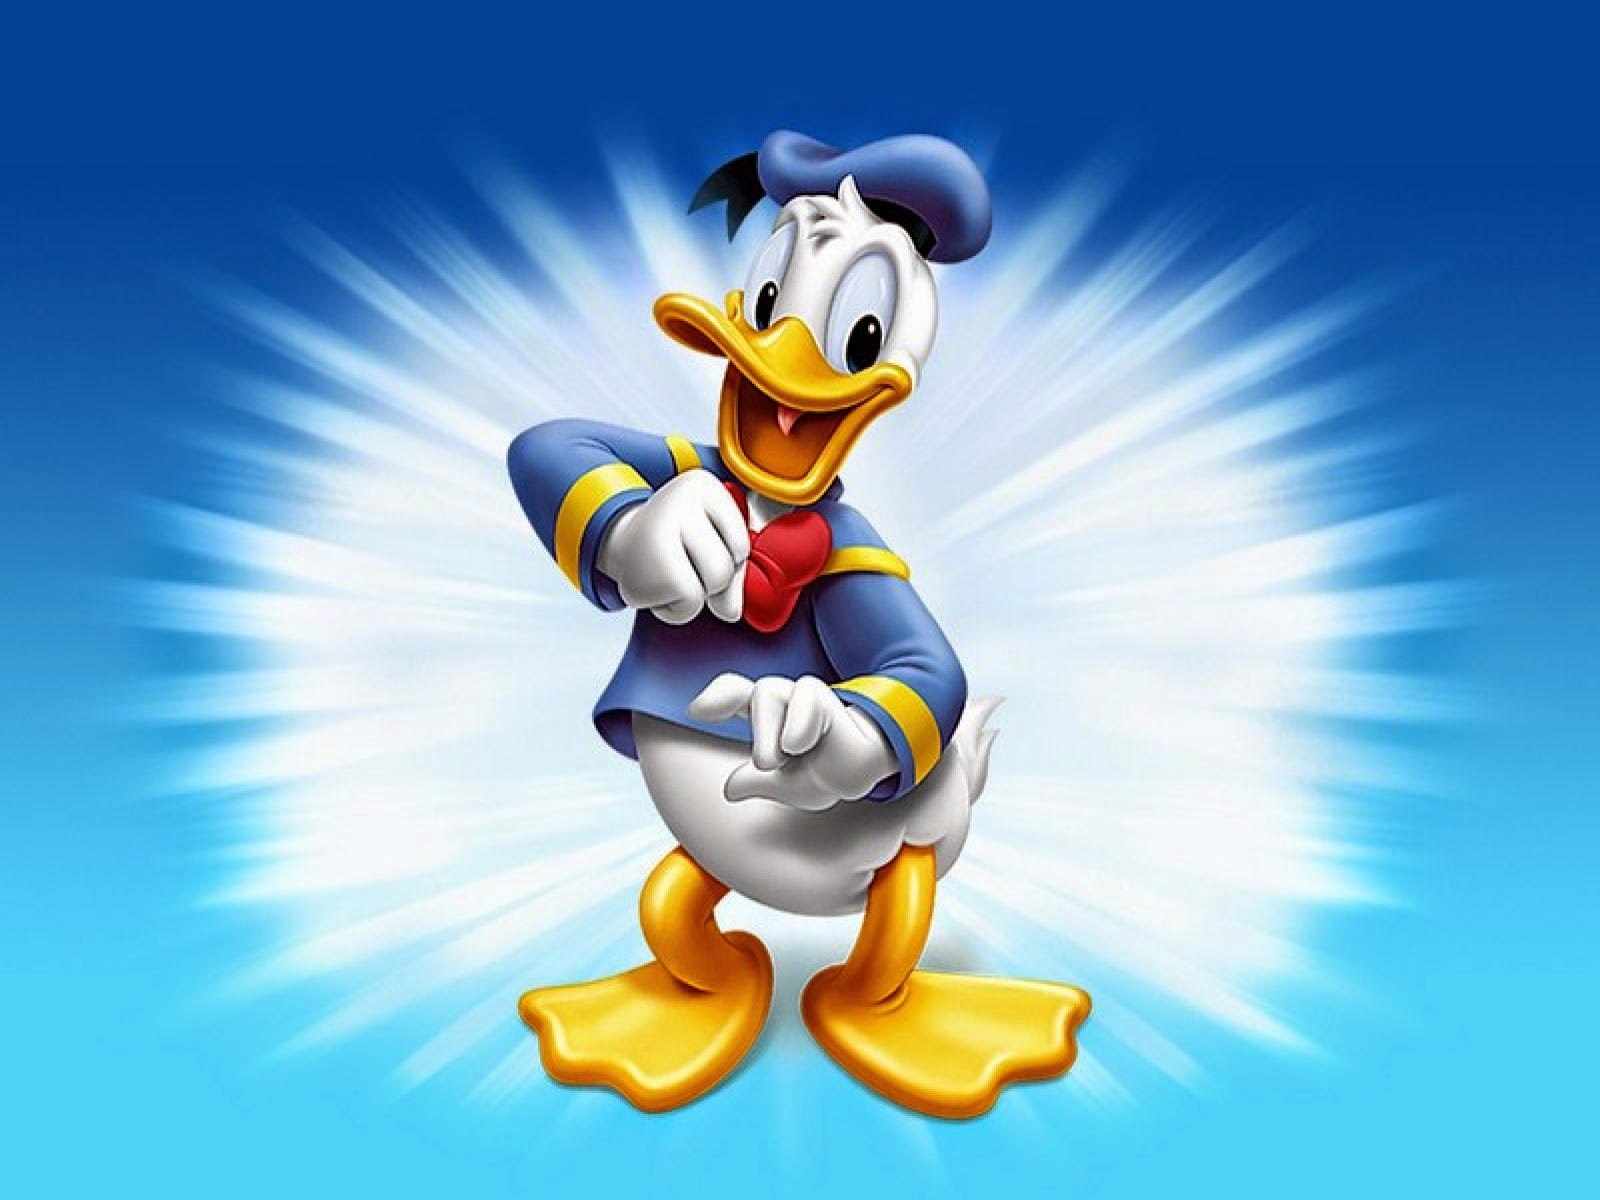 Donald-duck-cartoon-hd-desktop-background-wallpapers-pictures-download-for-free